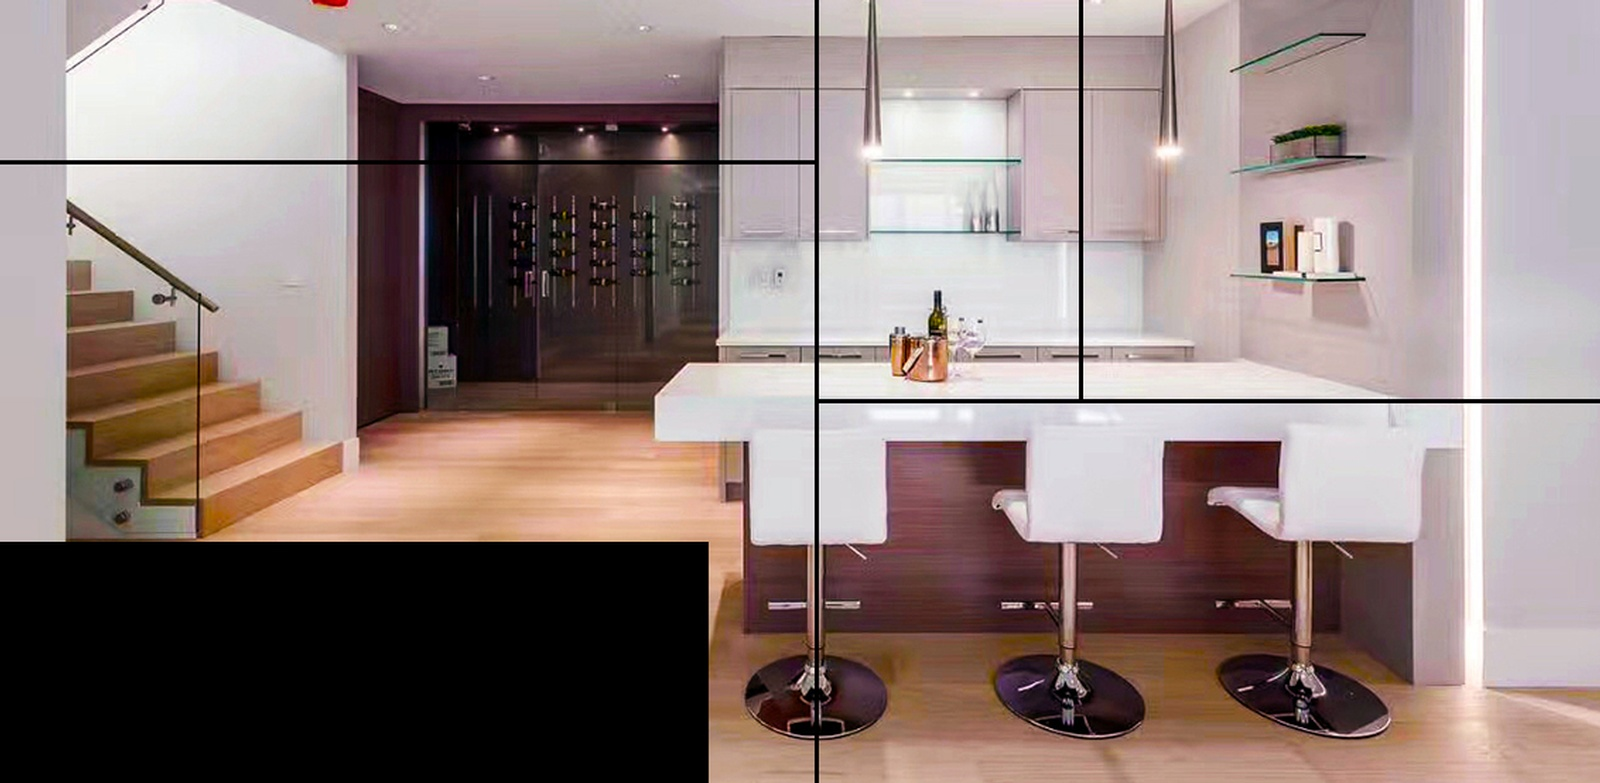 Engineered Hardwood Kitchen Flooring Services Vancouver by TJL Floor And Garage Door Inc